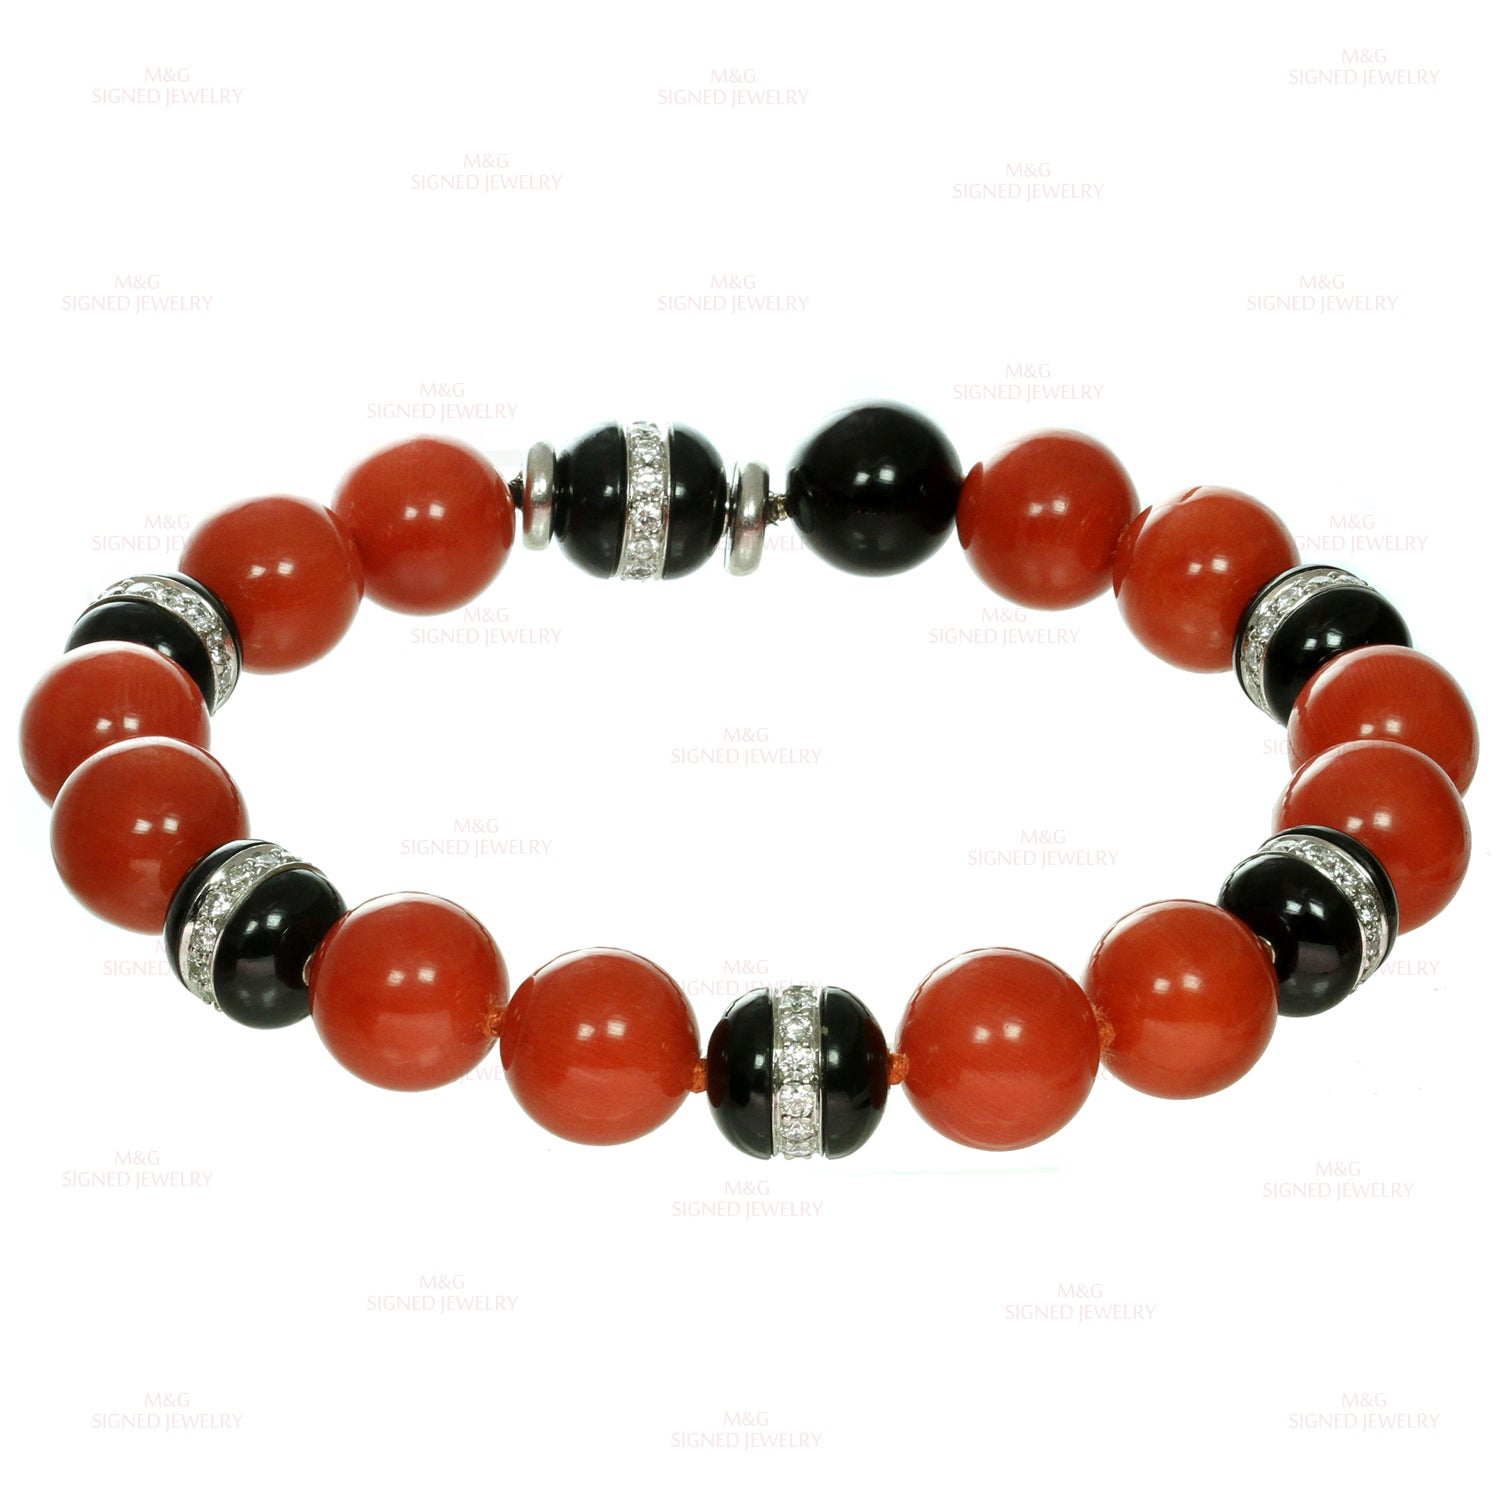 6622cd4b7 Tiffany and Co. Natural Oxblood Coral Onyx Diamond Bead Bracelet Pair or  Necklace For Sale at 1stdibs